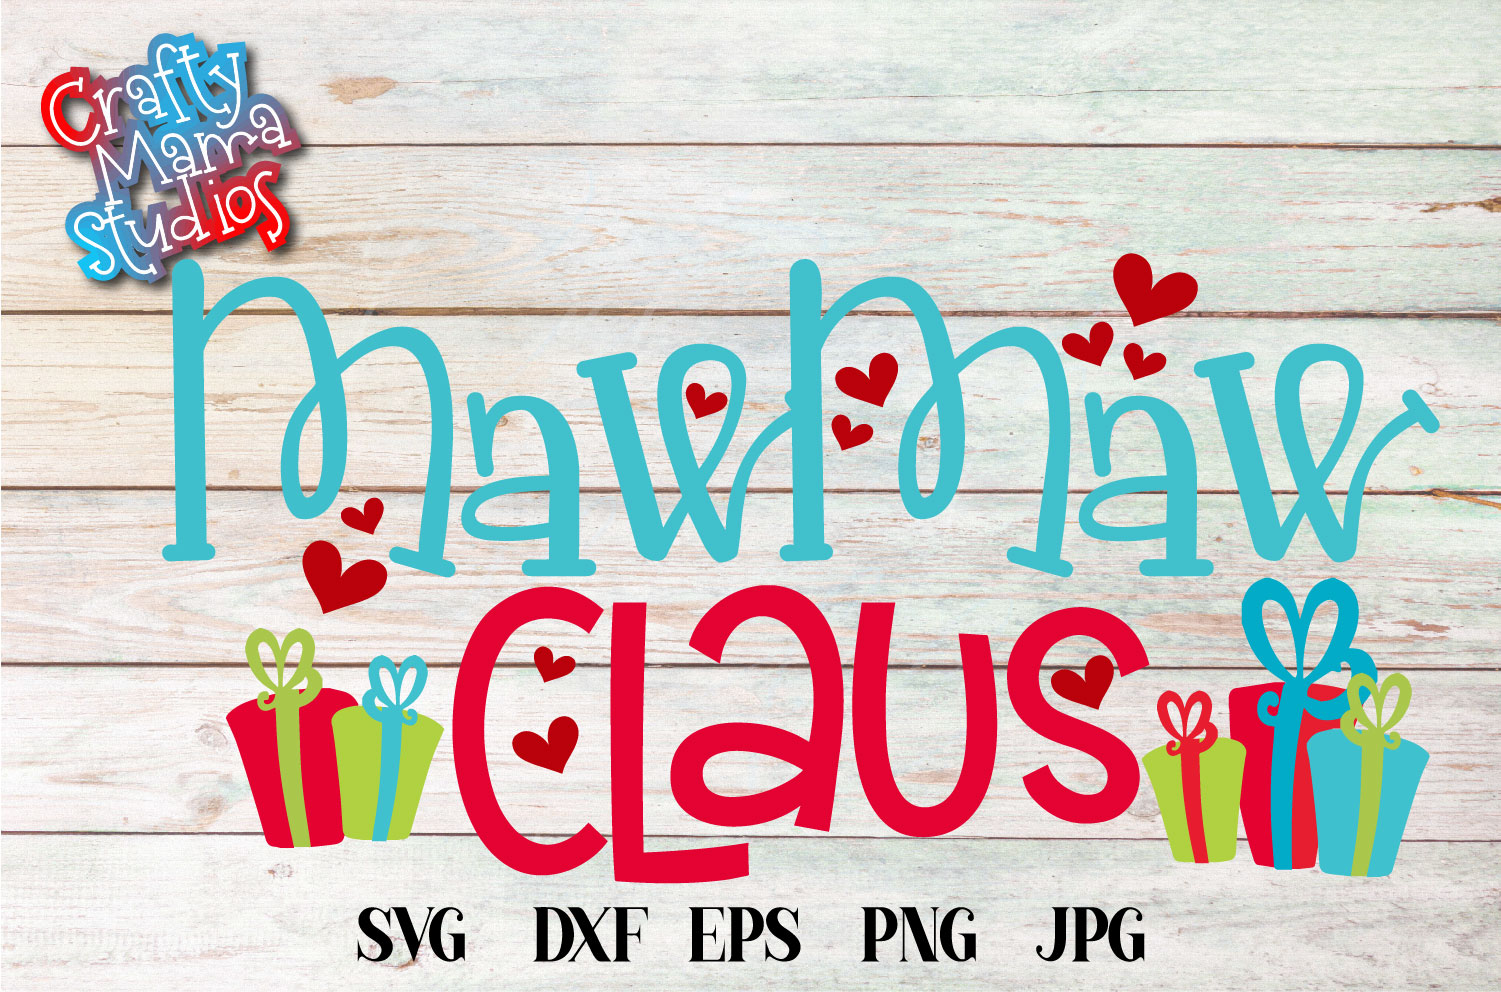 Christmas SVG, MawMaw Claus, Santa Claus Sublimation example image 3